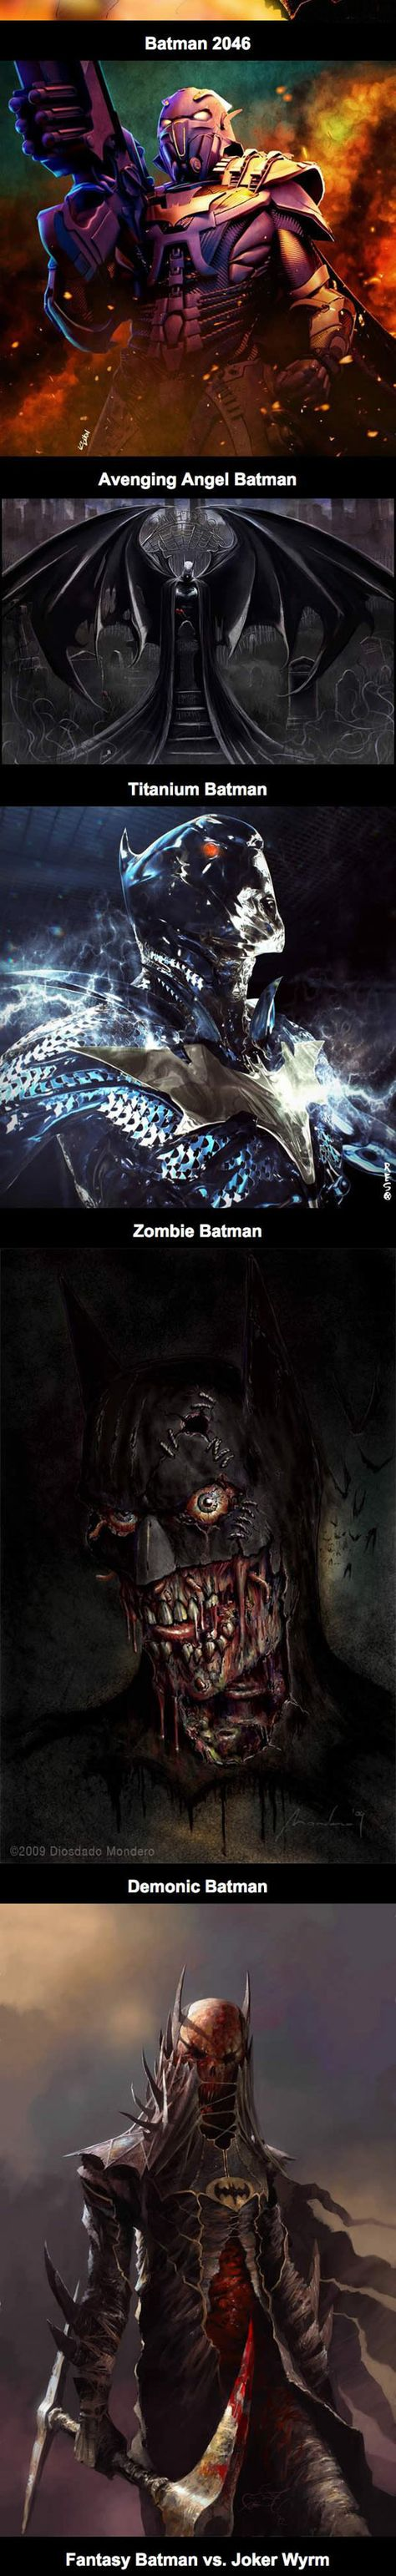 Funny Batman Illustrations Medieval Future Ages Zombie BatmanBatman Vs SupermanSuper